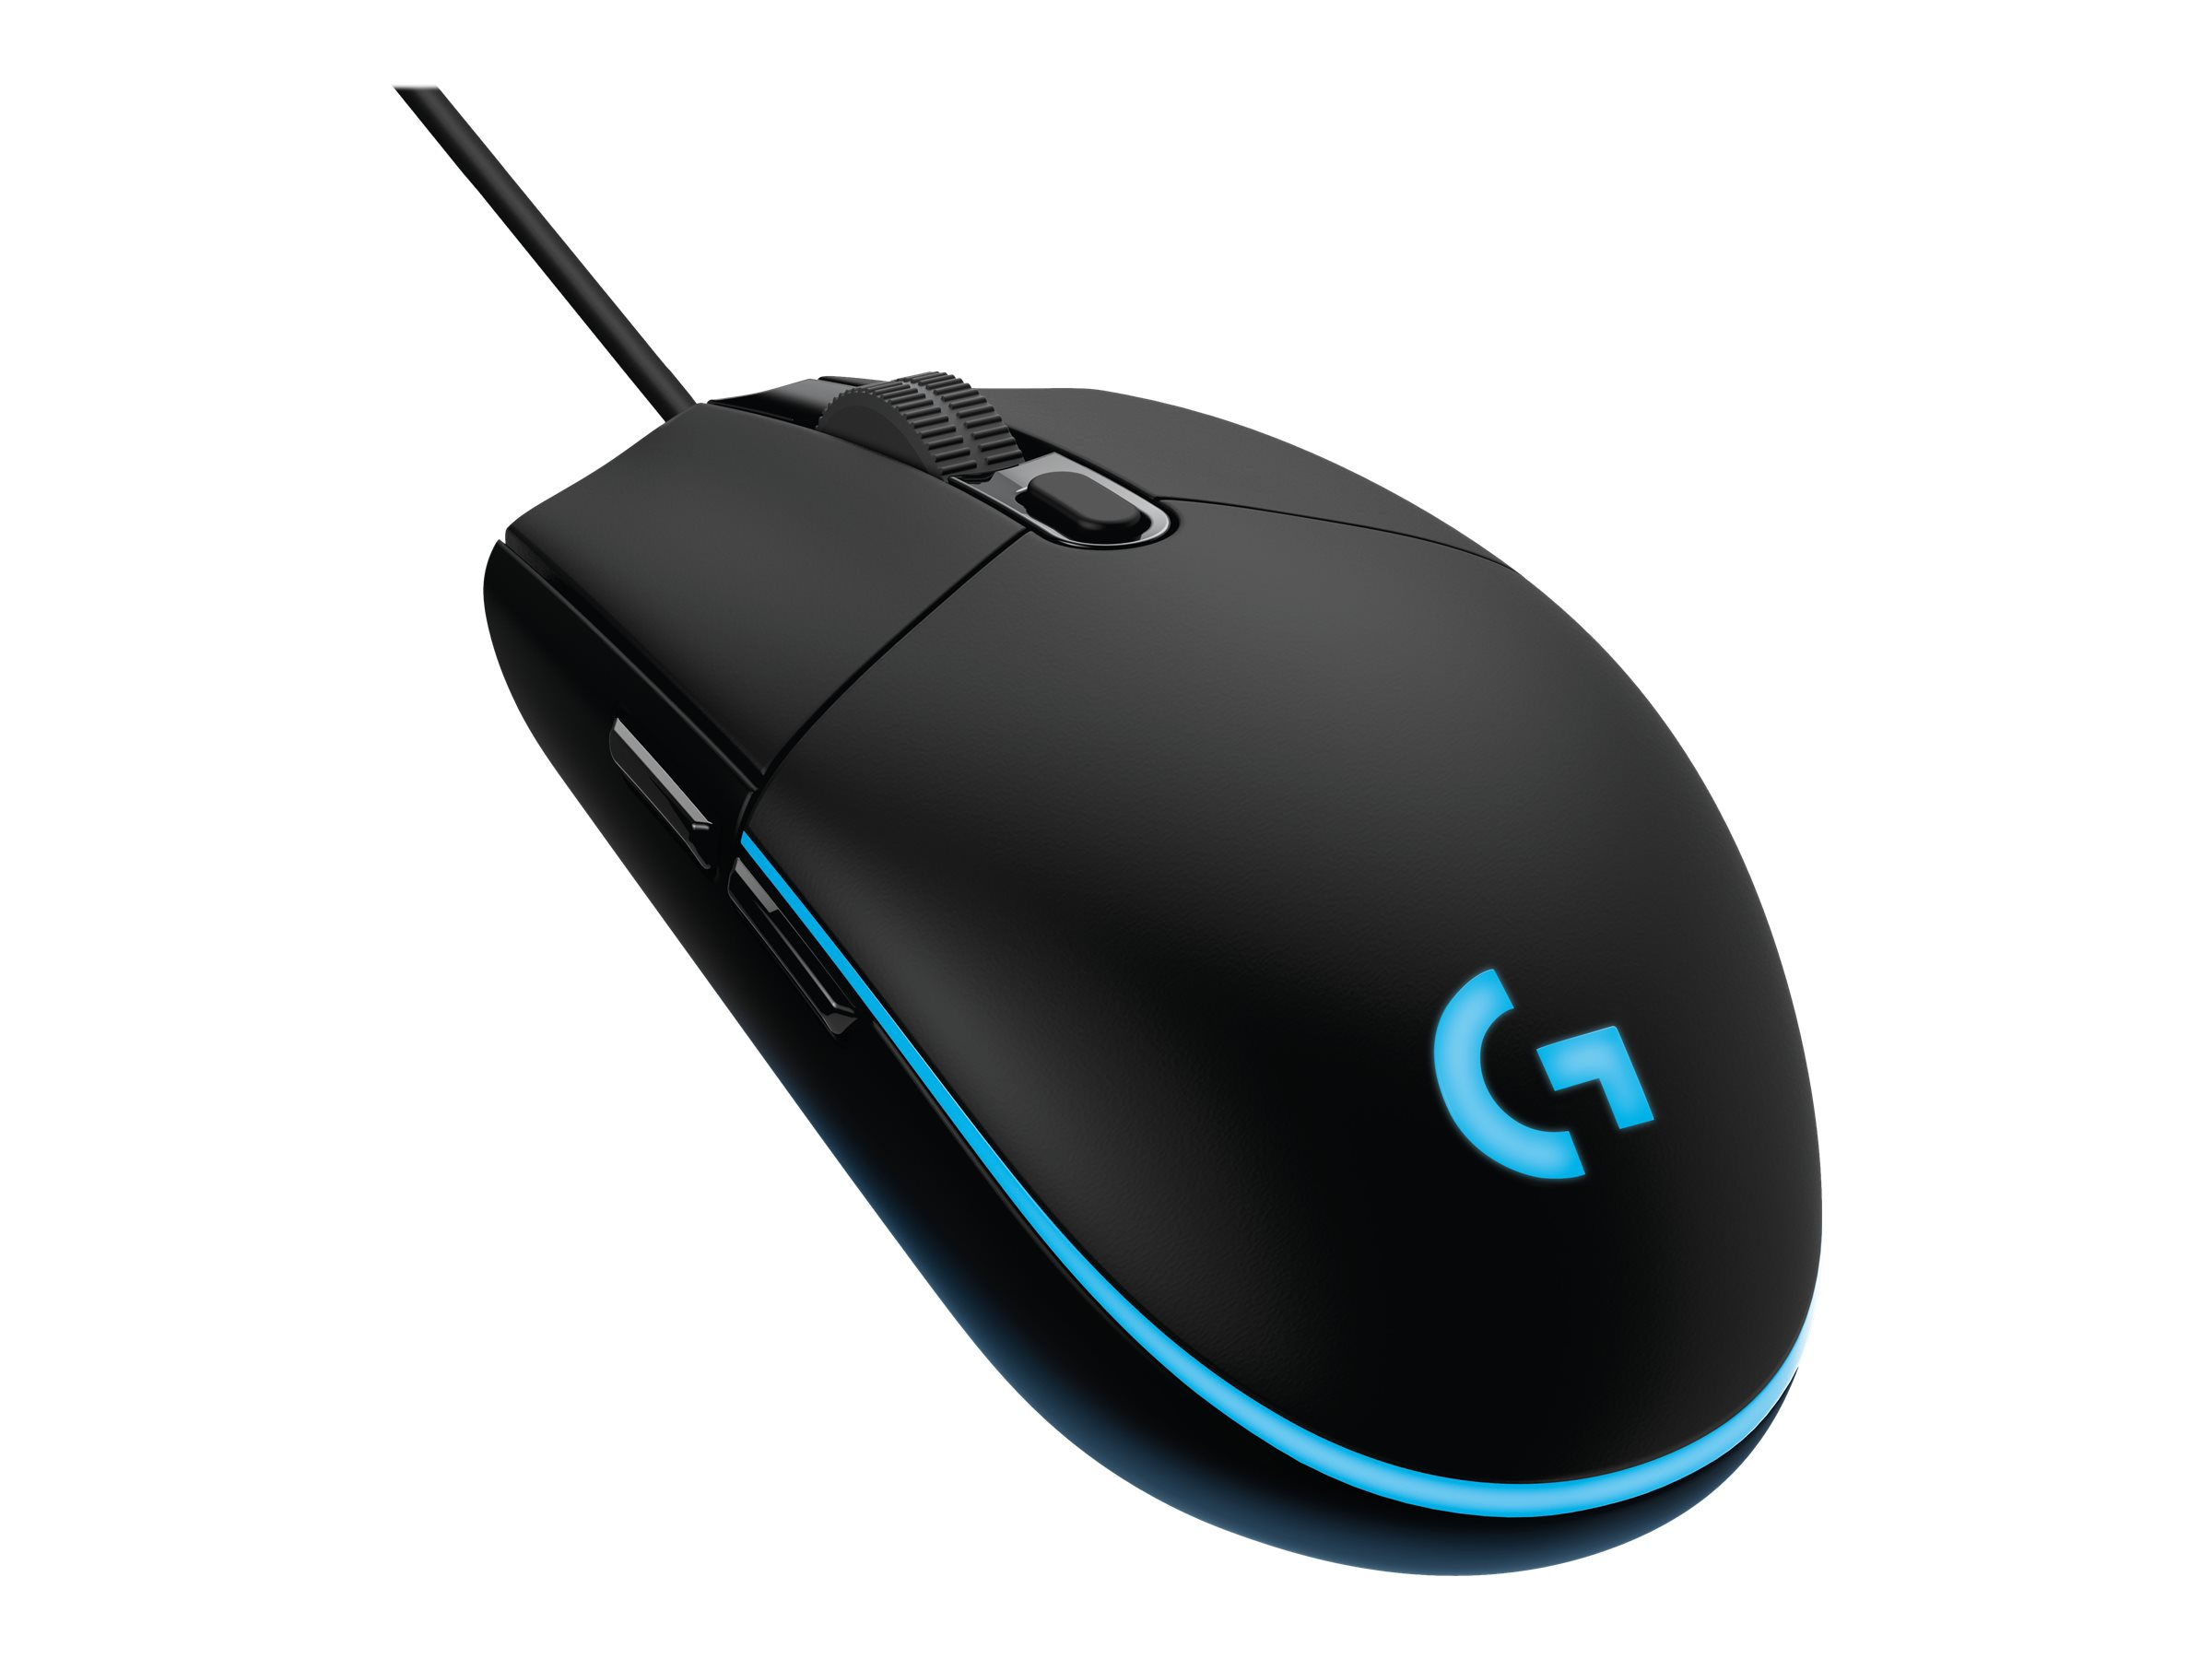 Image for Logitech Gaming Mouse G203 Prodigy - Mouse - Usb - Black from Circuit City